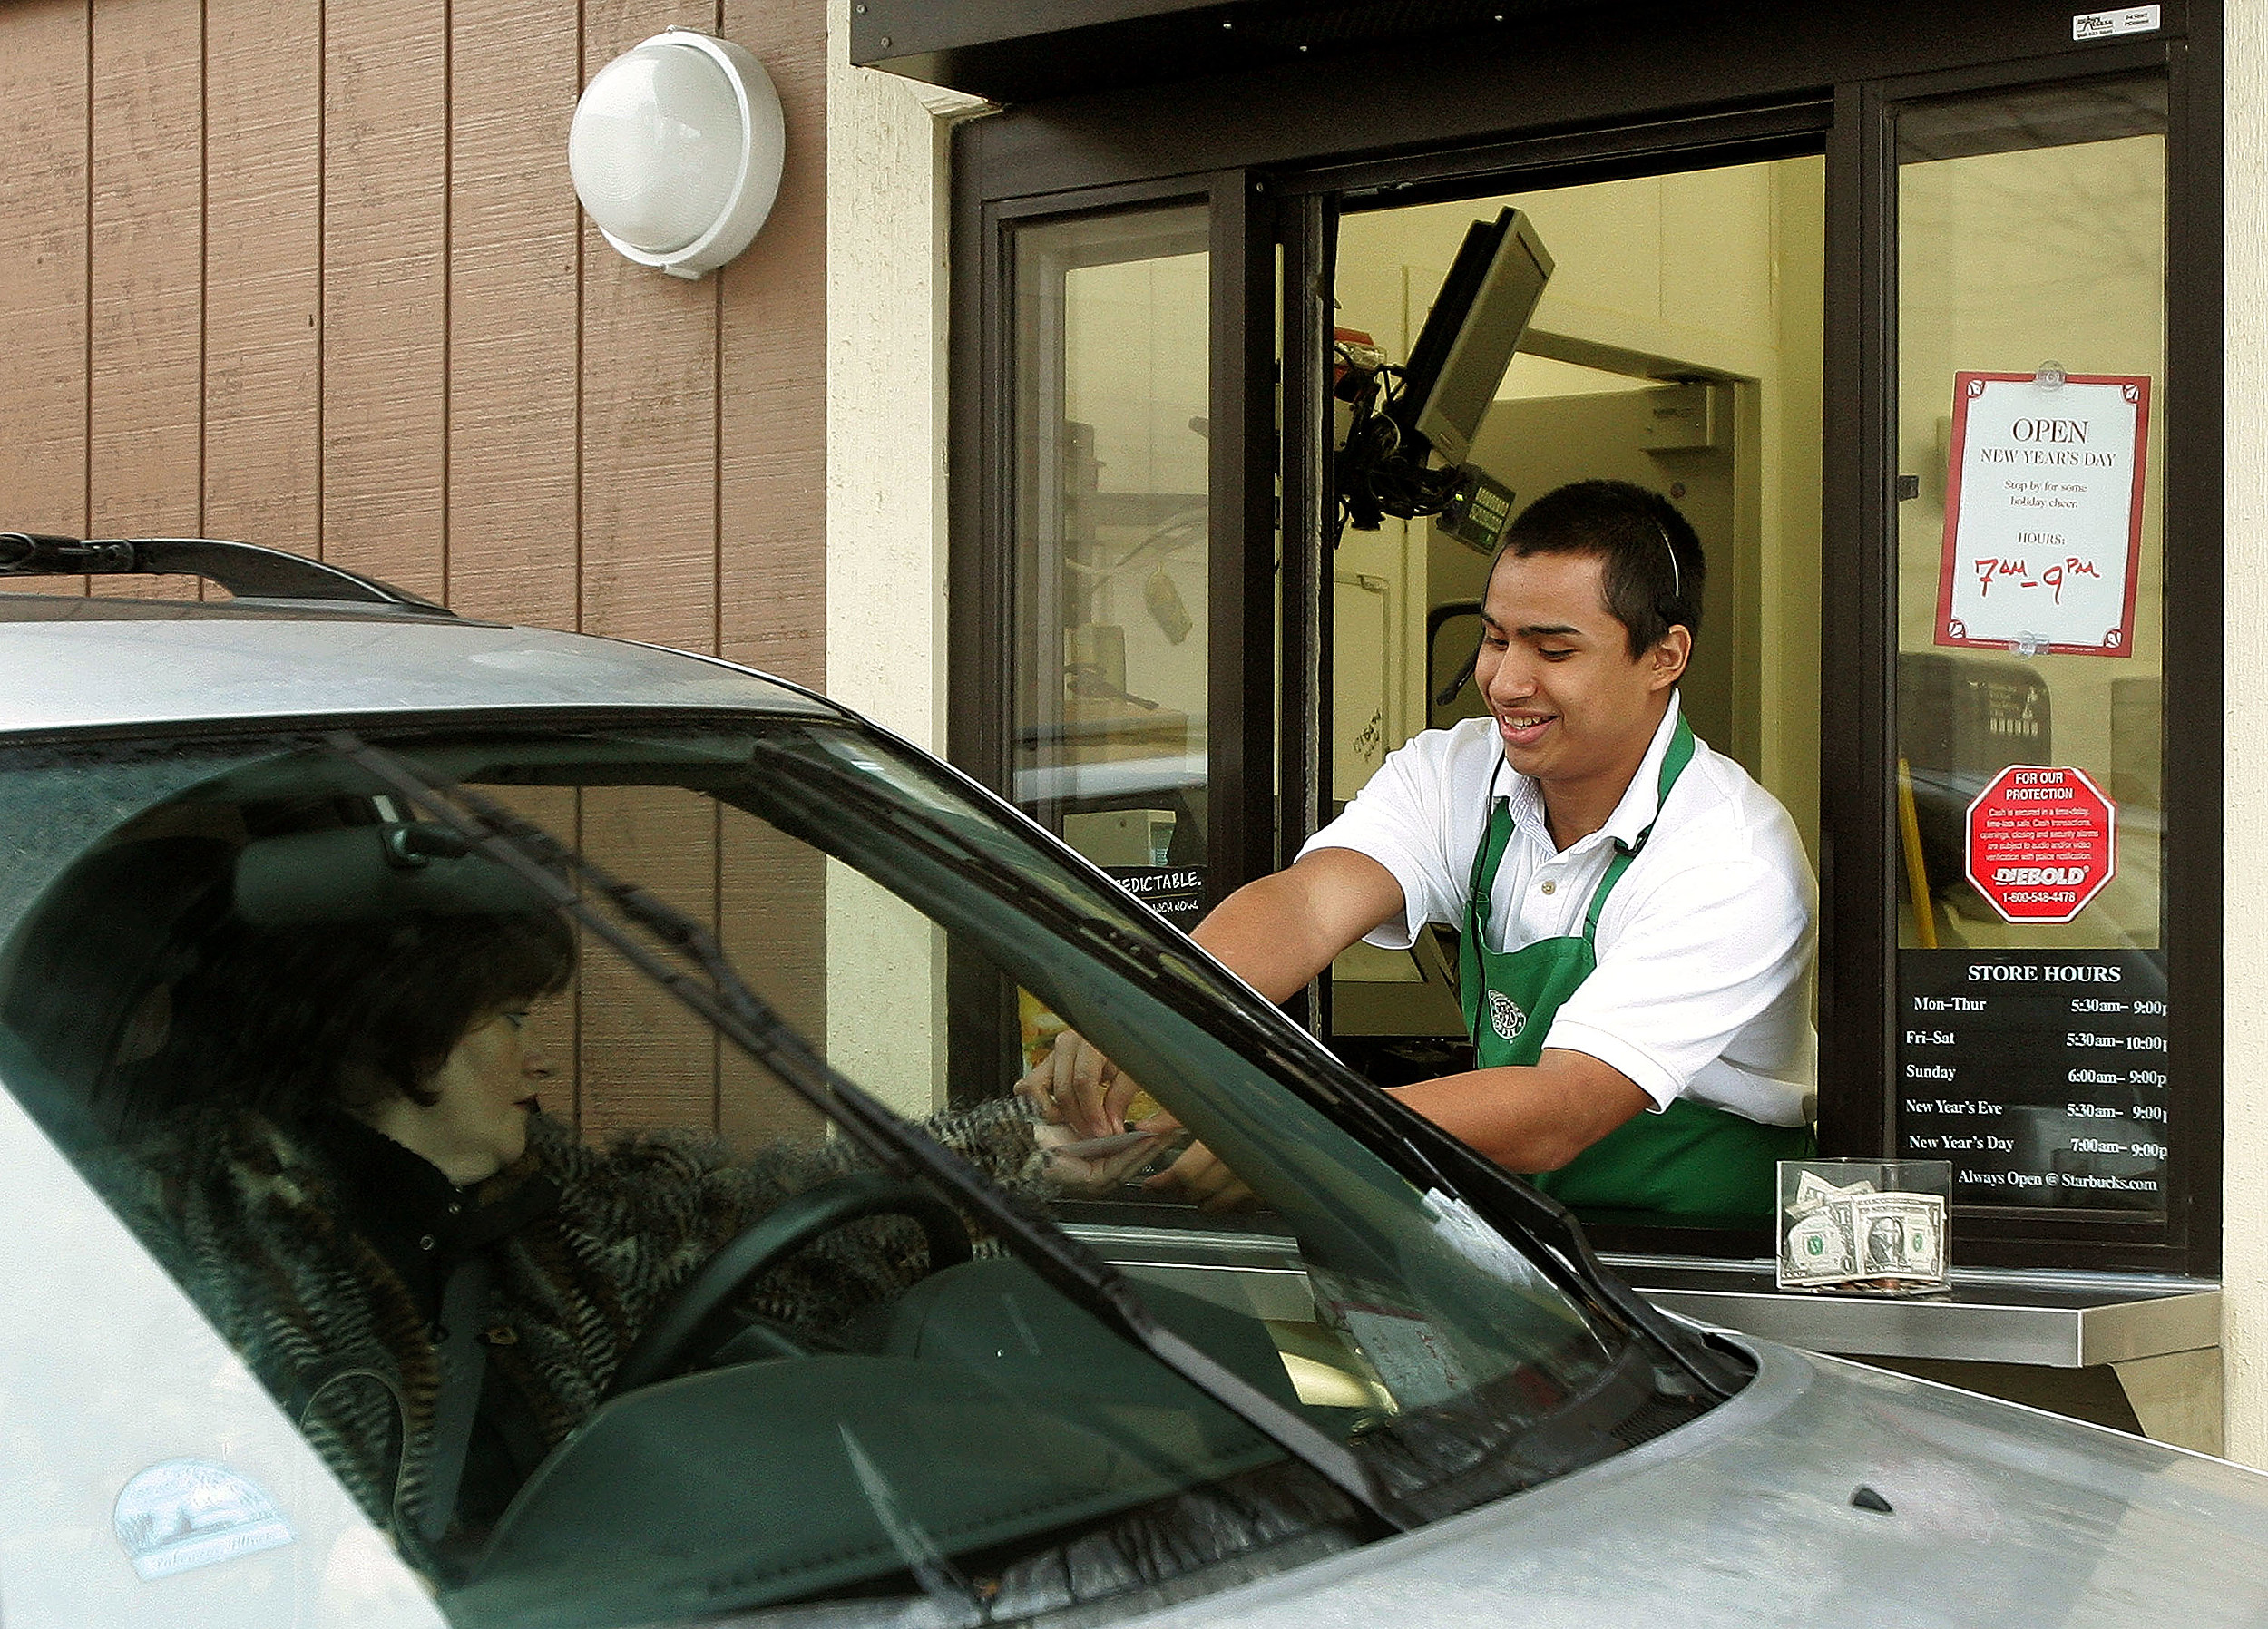 Starbucks Invests Heavily In Drive-Thru Market